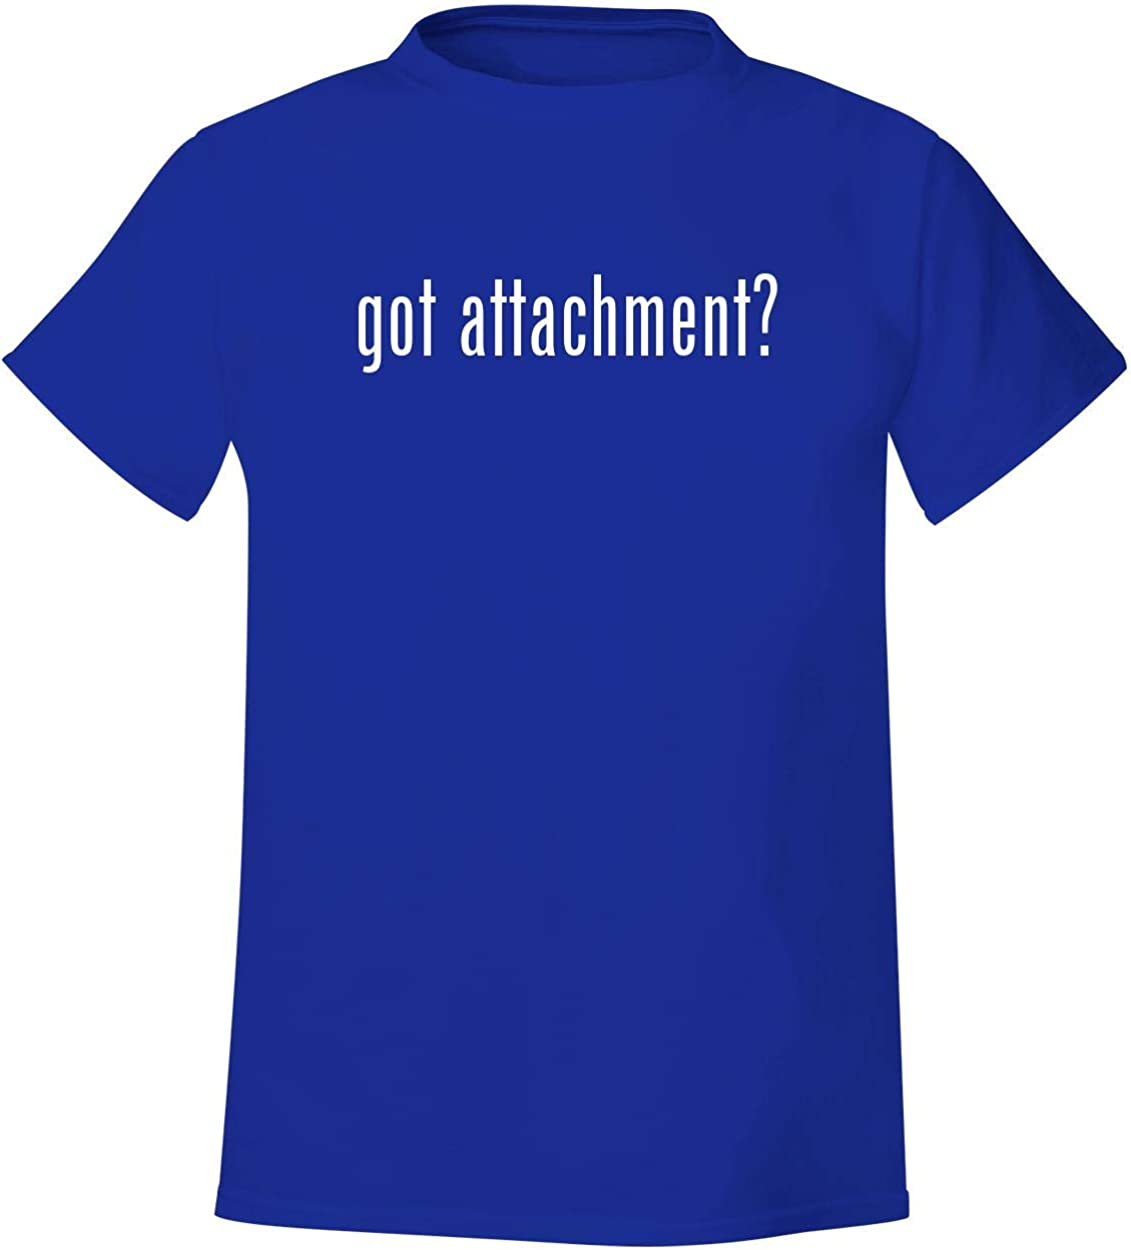 got attachment? - Men's Soft & Comfortable T-Shirt